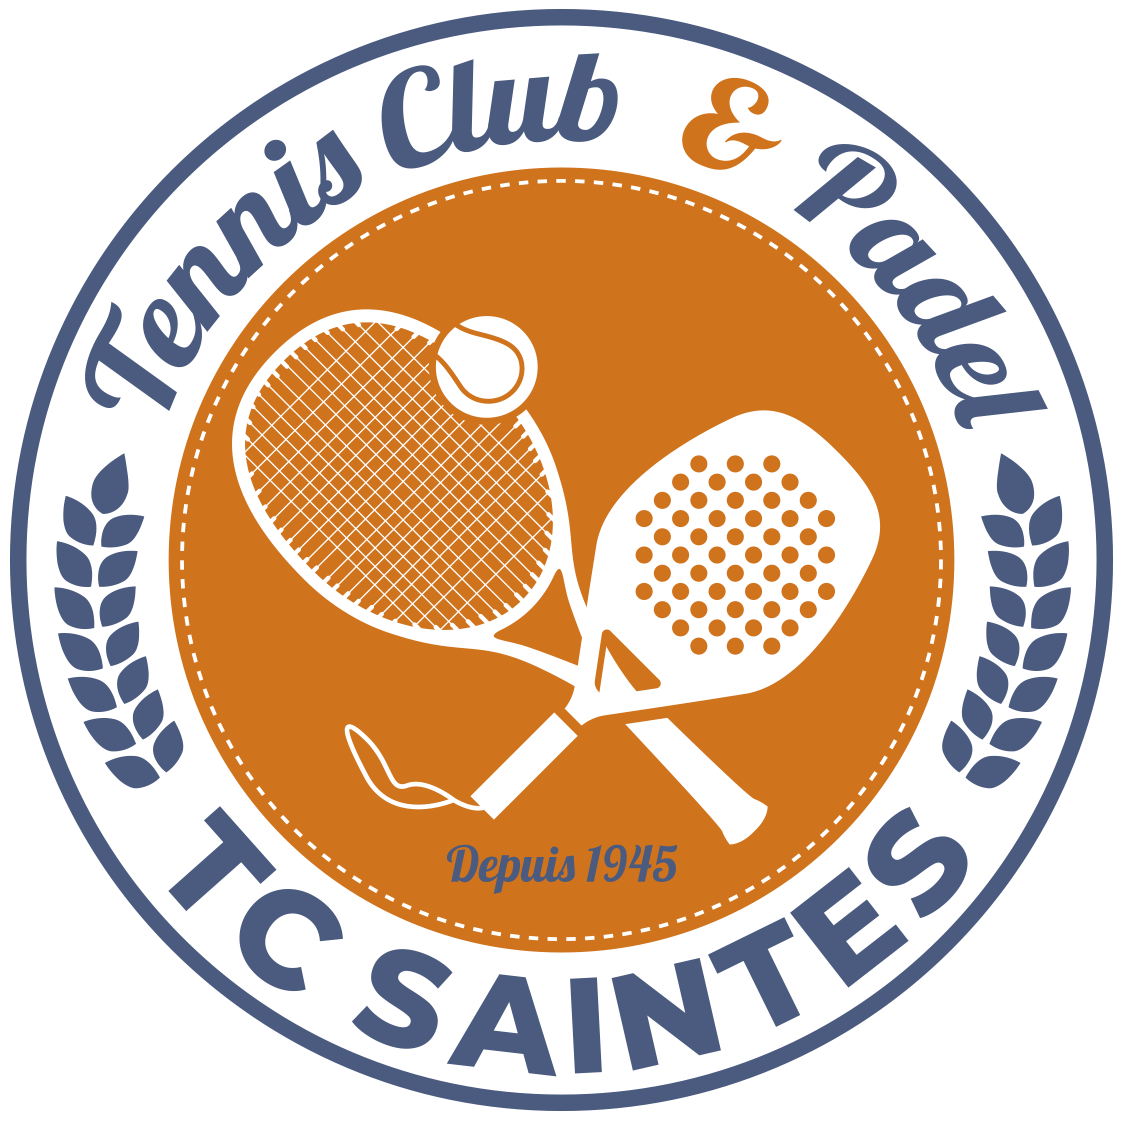 TENNIS CLUB DE SAINTES